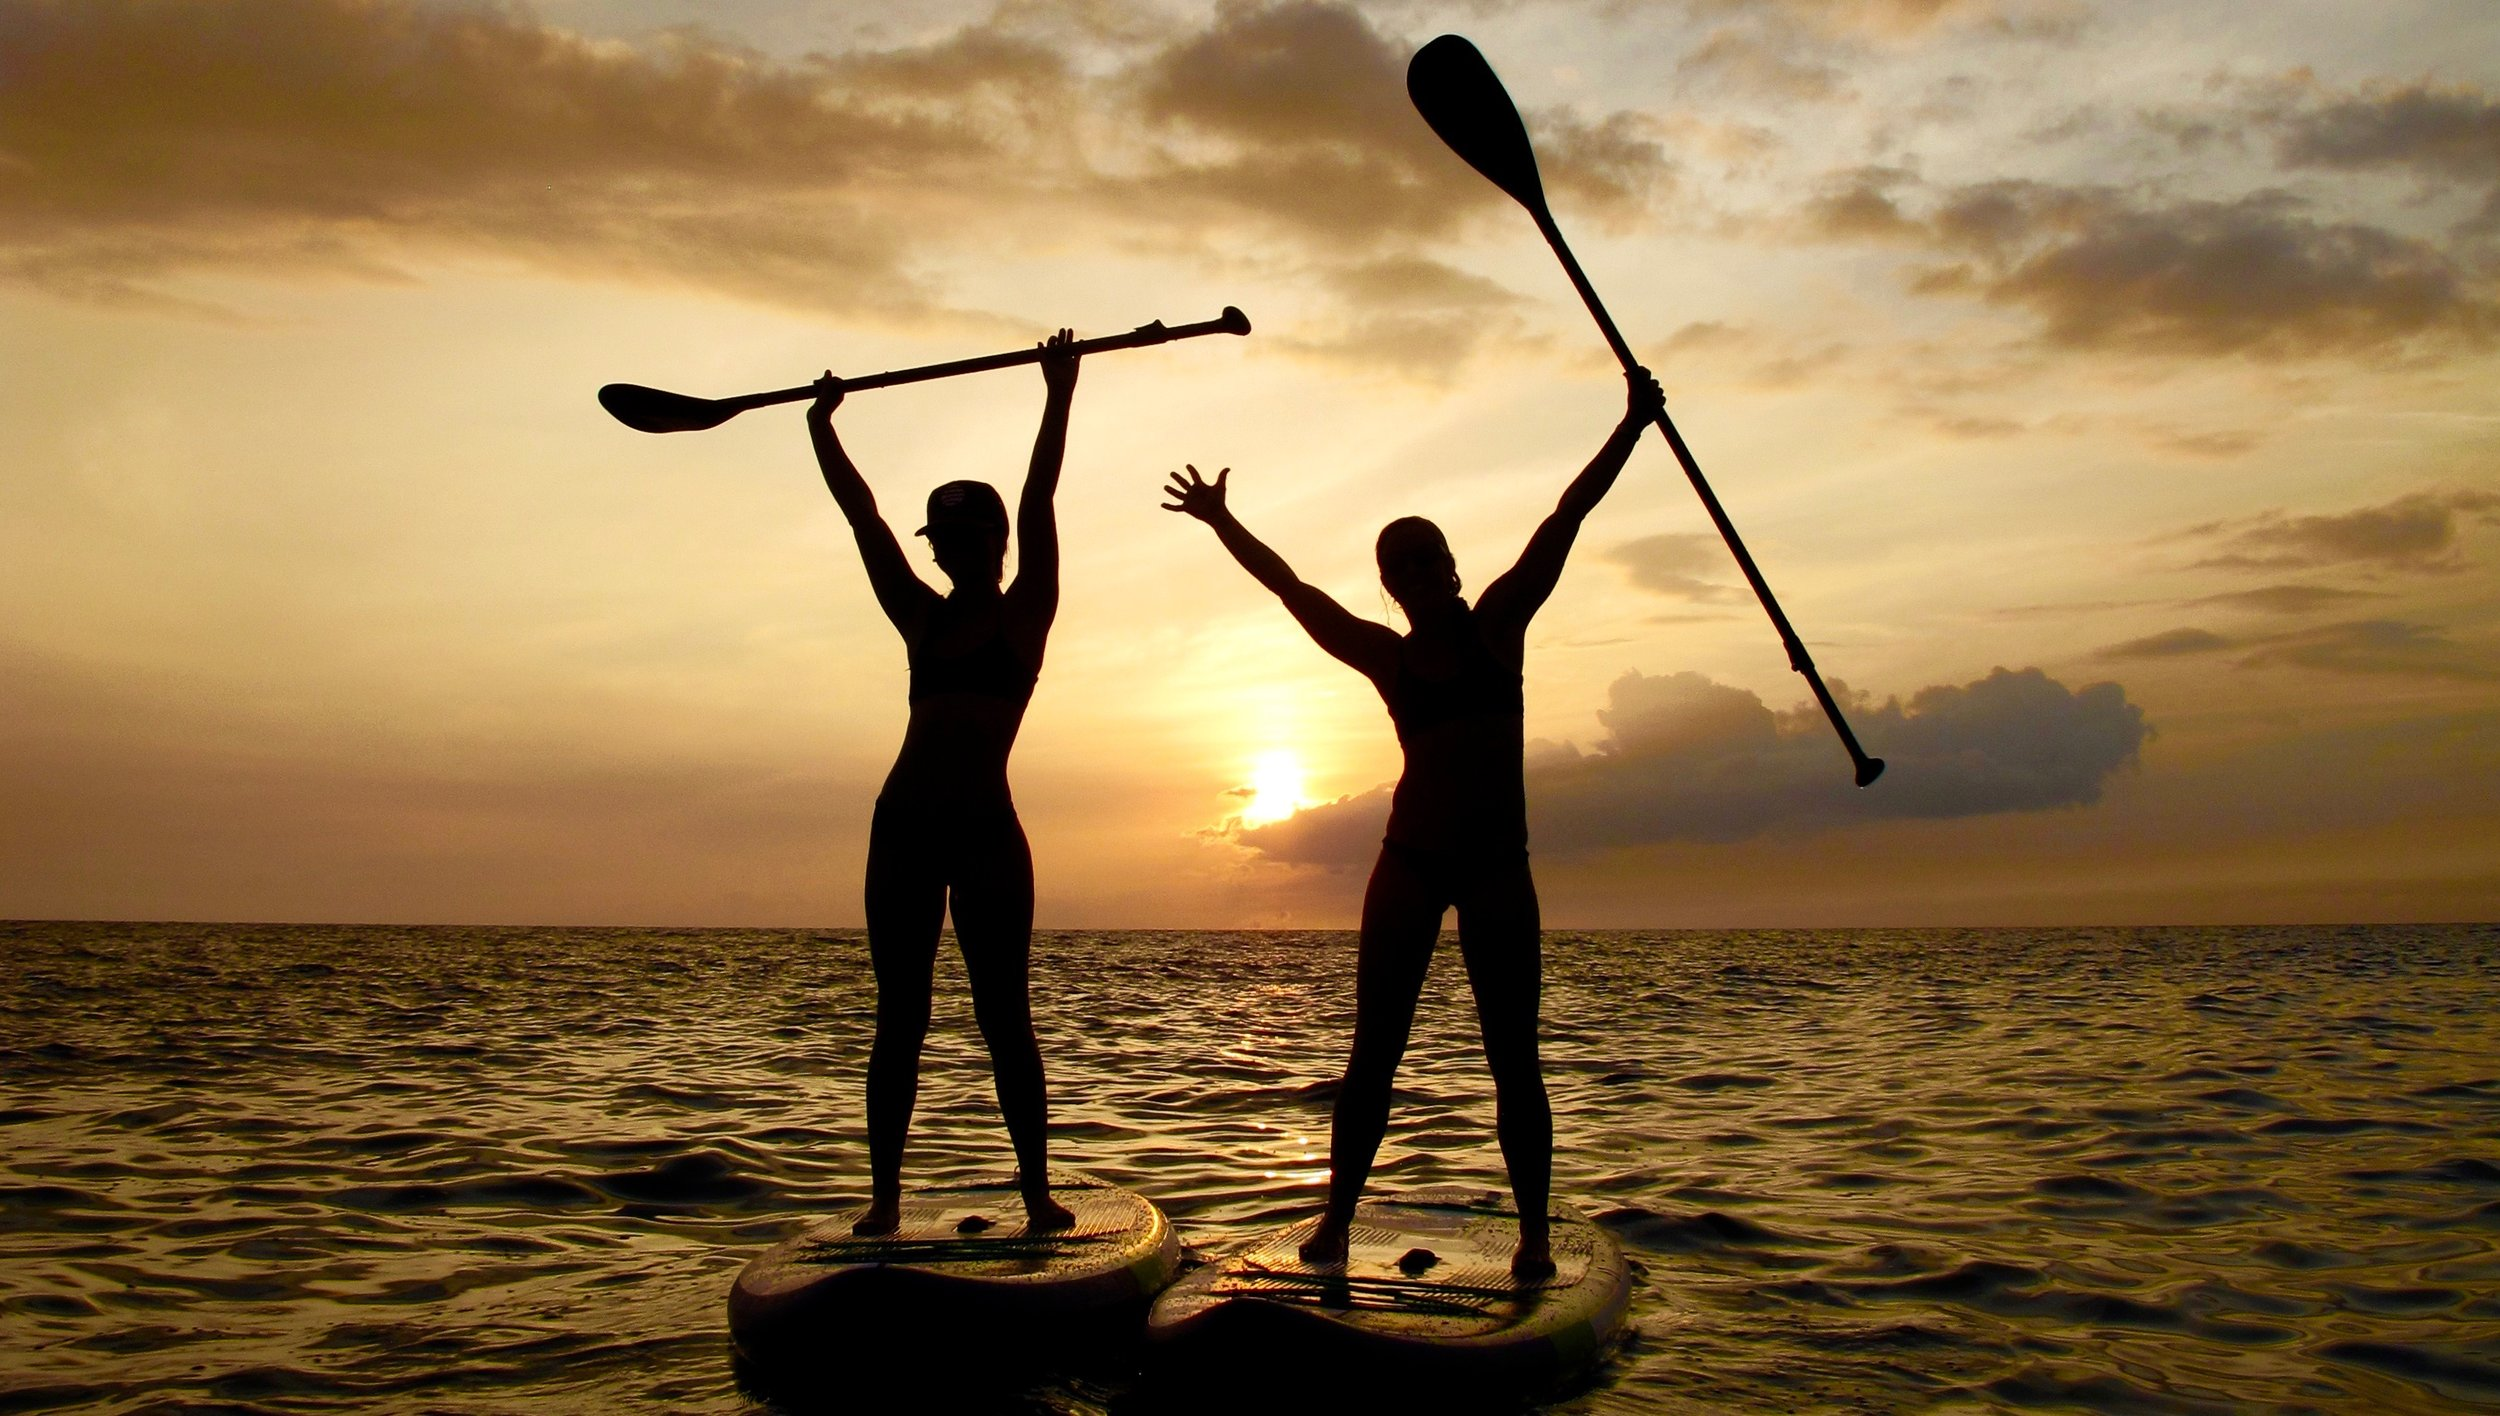 PADDLE BOARD LESSON - If you're not ready to rent one on your own, have one of our expert guides show you the ropes. After your thirty minute lesson you get an additional hour to use the board when you are ready!